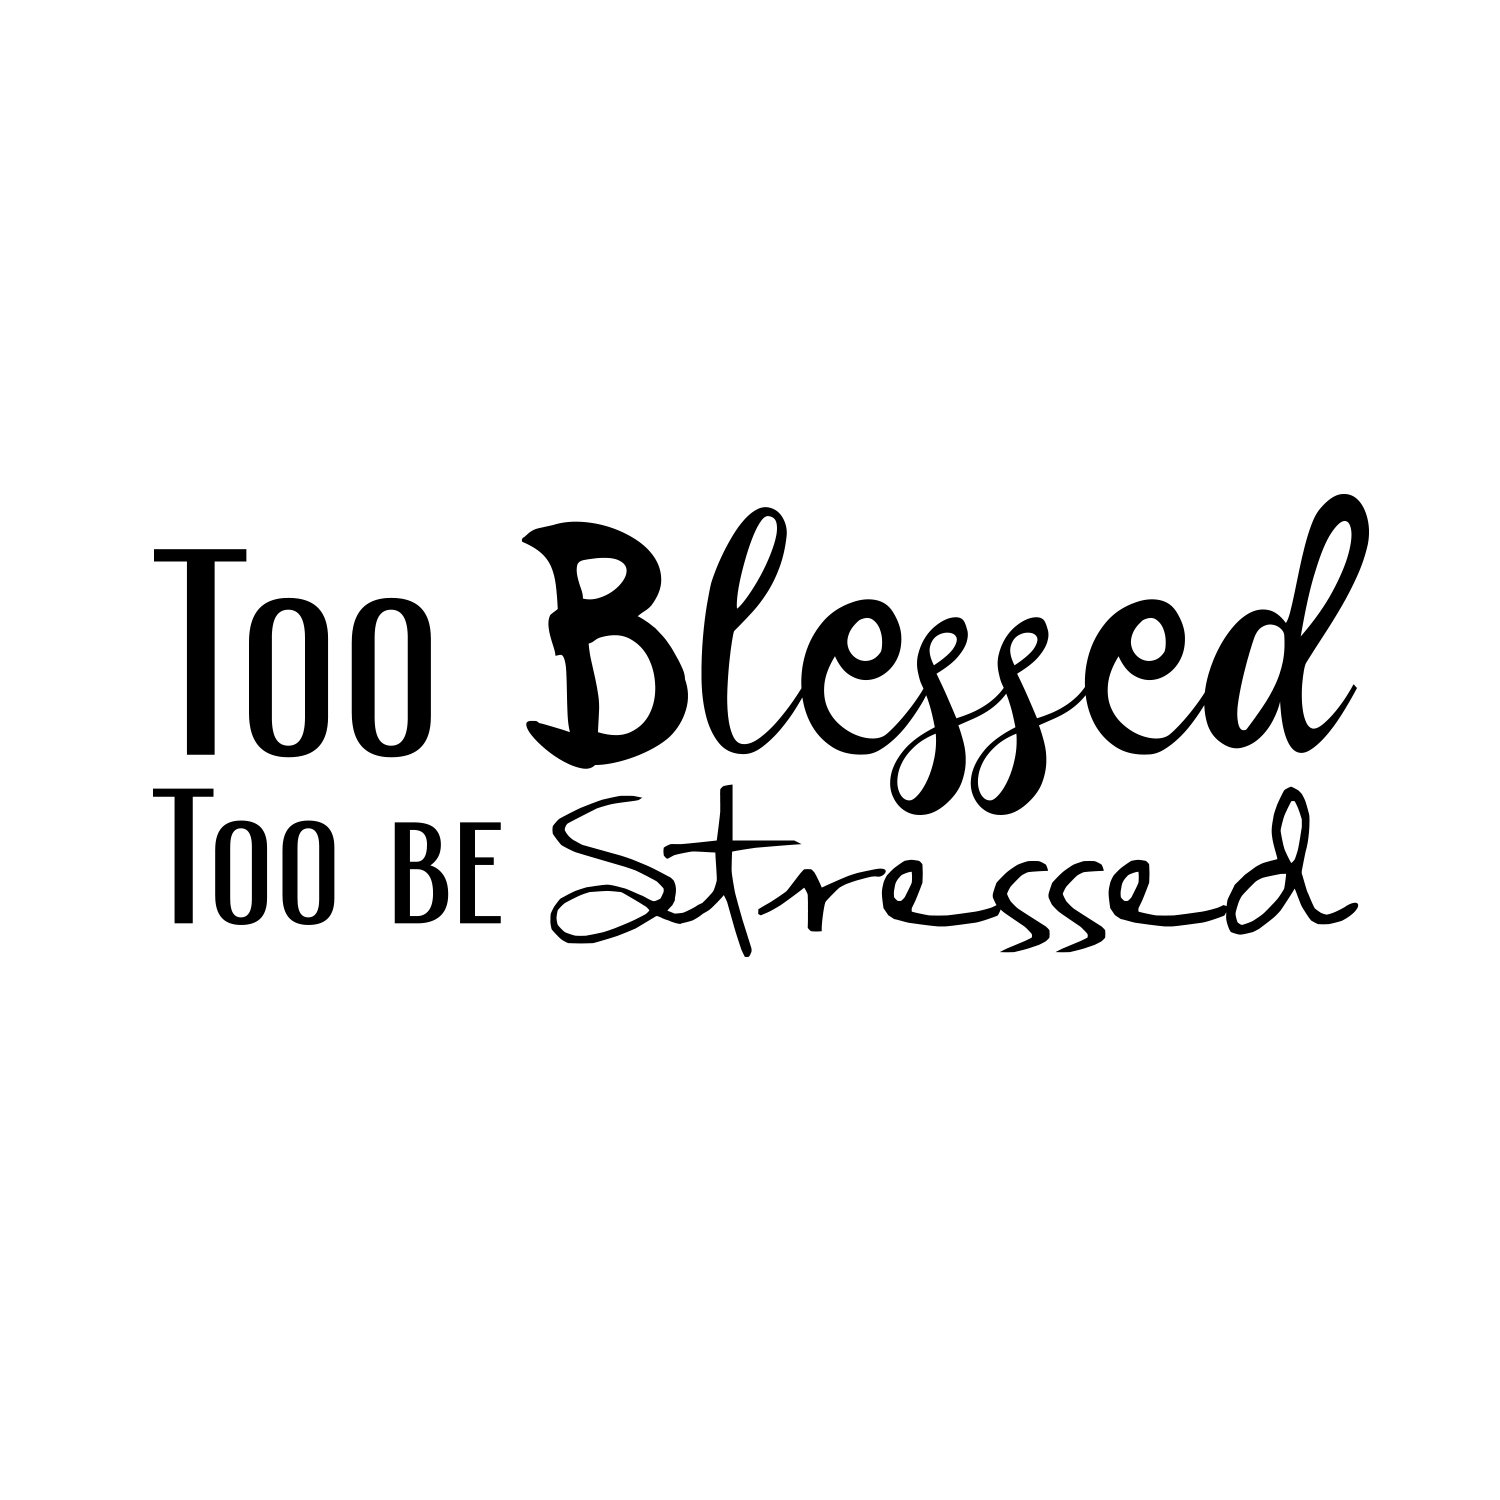 Vinyl Wall Art Decal - Too Blessed to Be Stressed - 23'' x 18'' - Home Decor Bedroom Living Room Office Work Insirational Motivational Sayings - Removable Sticker Decals Cursive Lettering